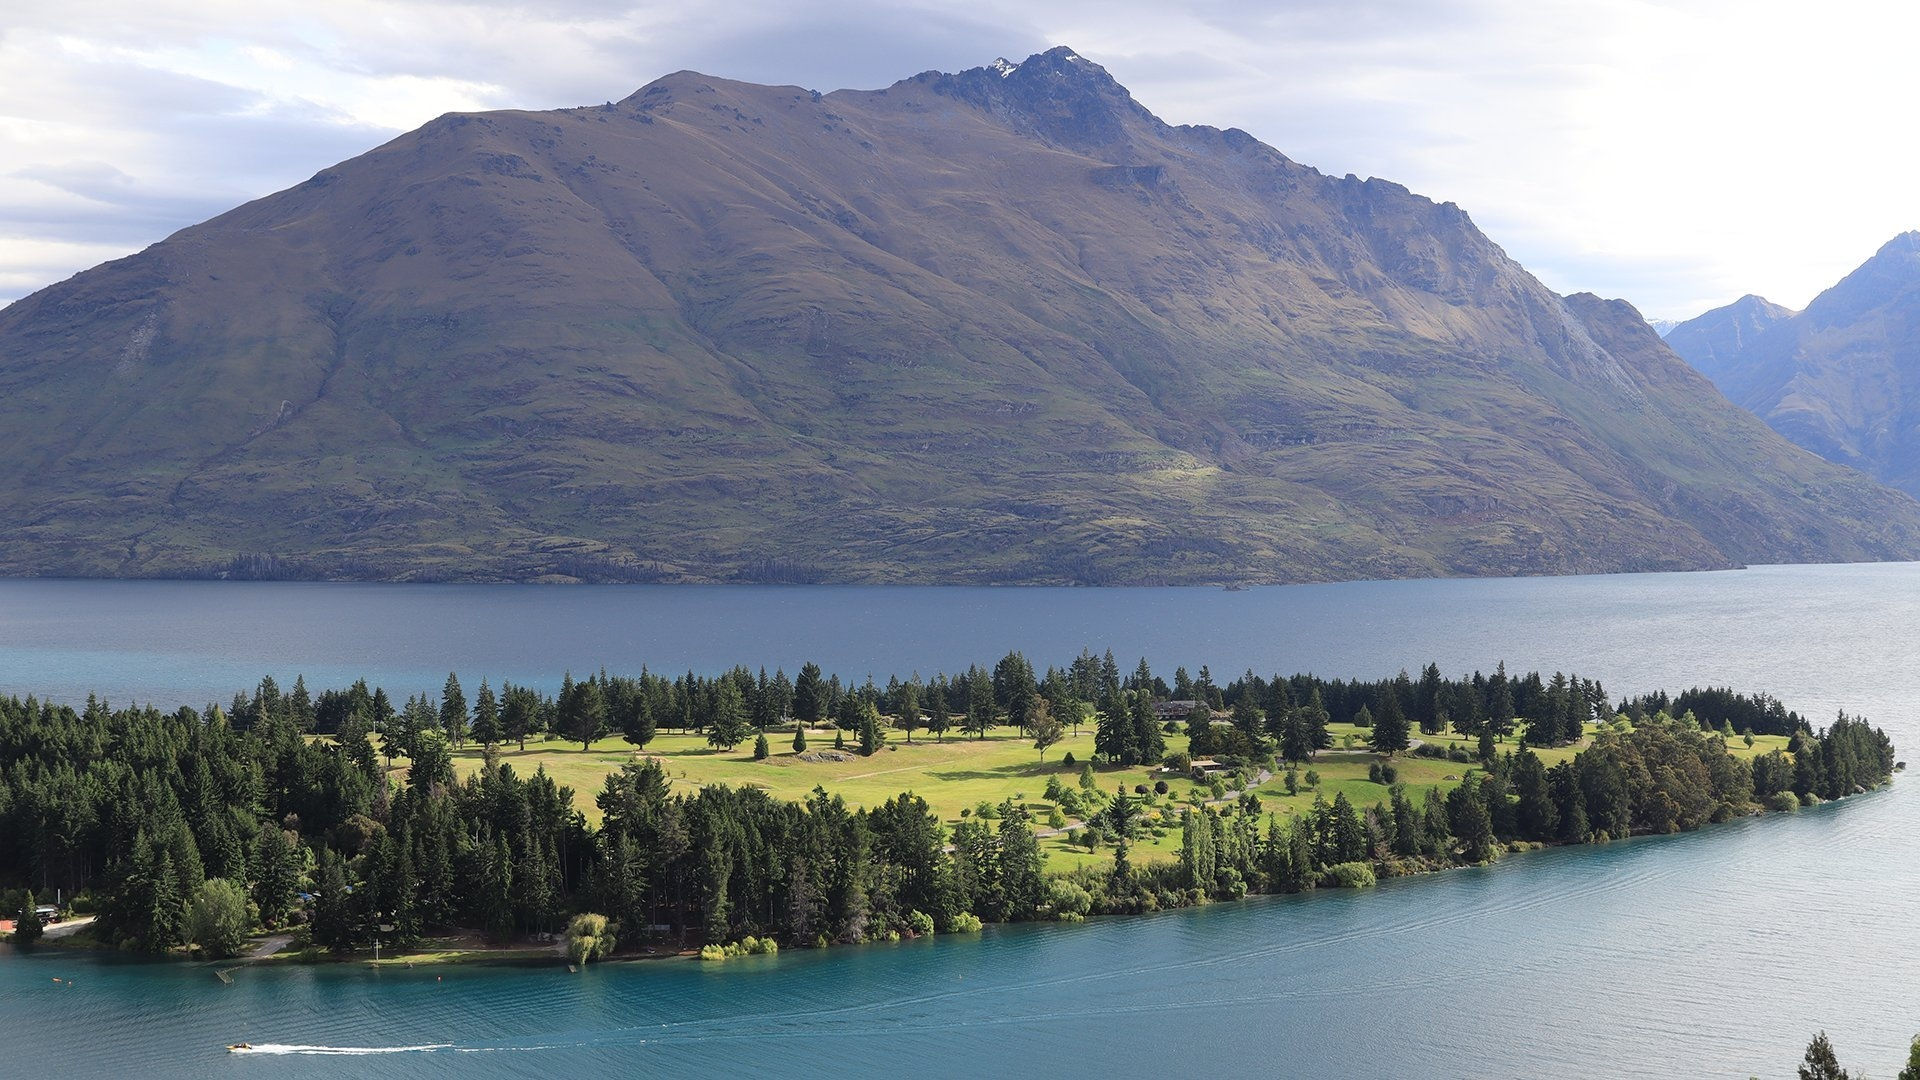 Mountains in New Zealand with a boat cruising along the lake